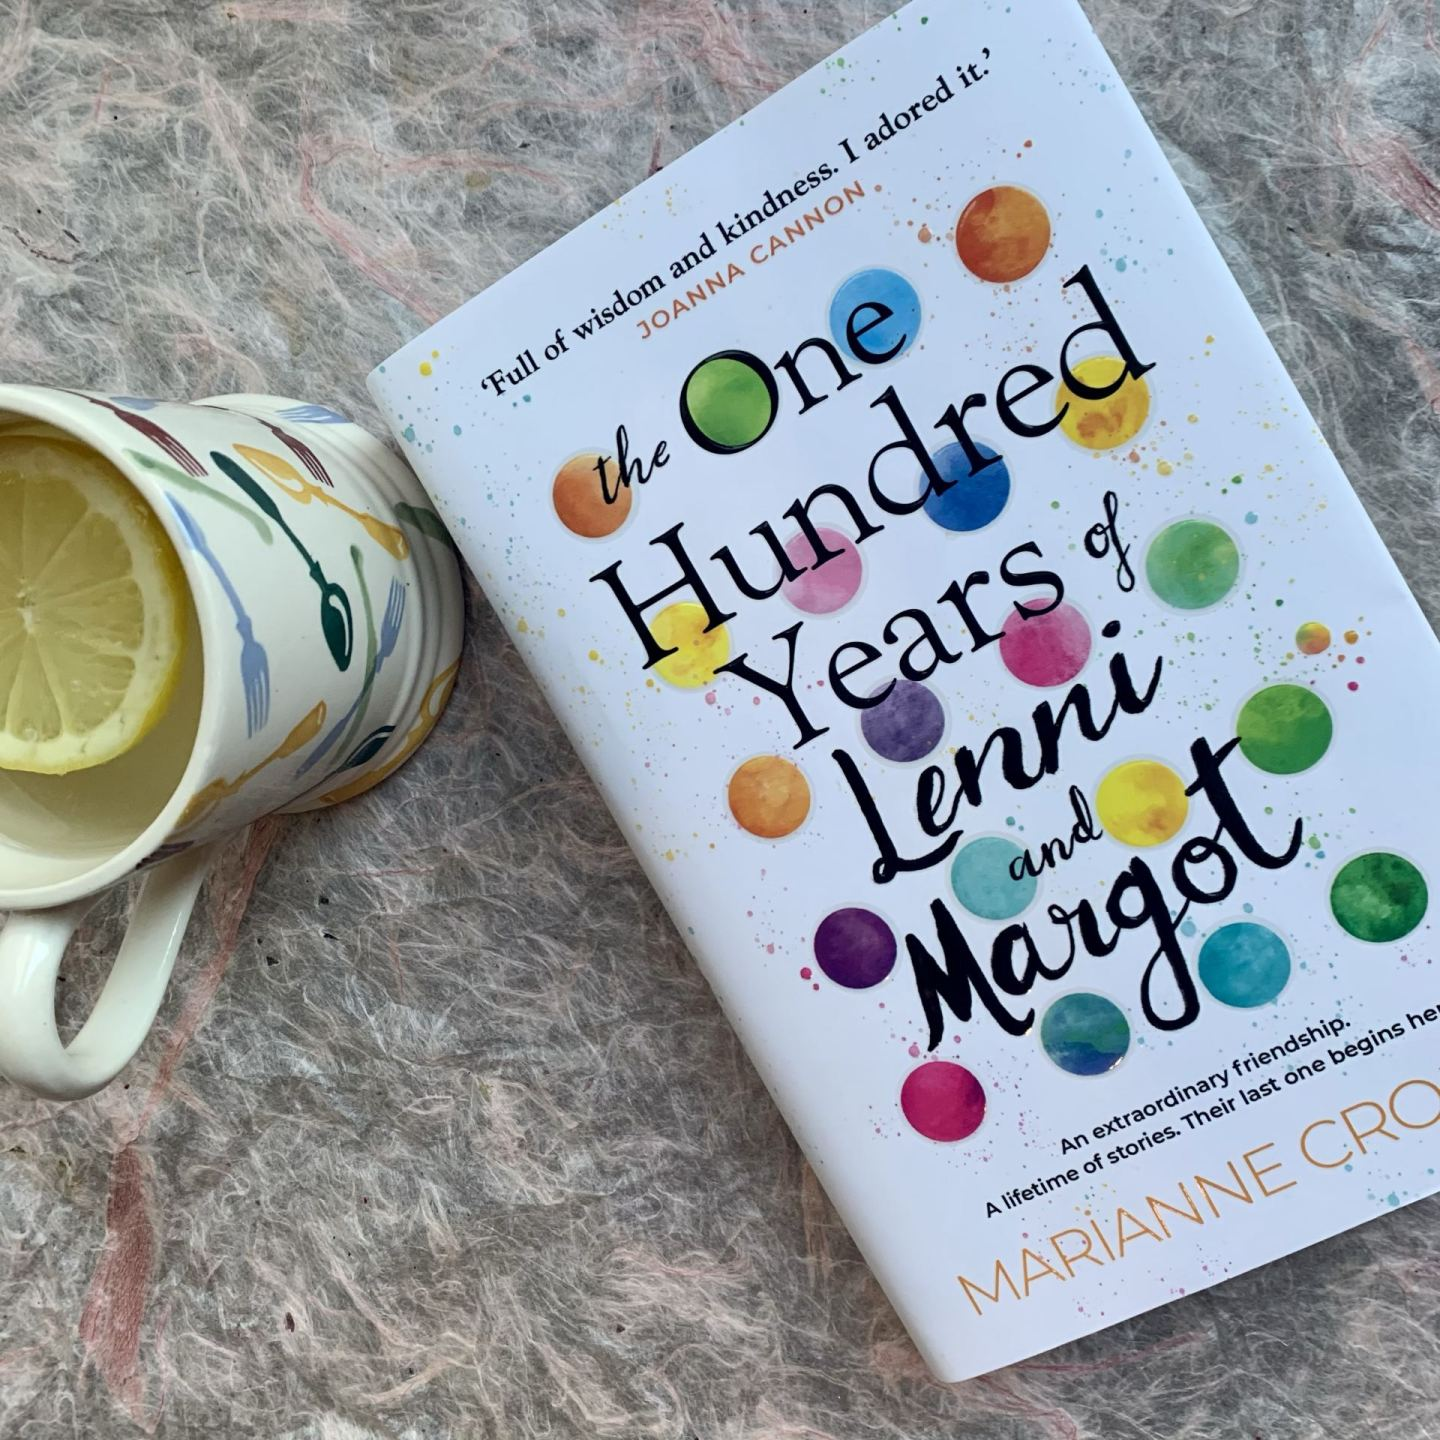 The One Hundred Years of Lenni and Margot; an uplifting mosaic of life